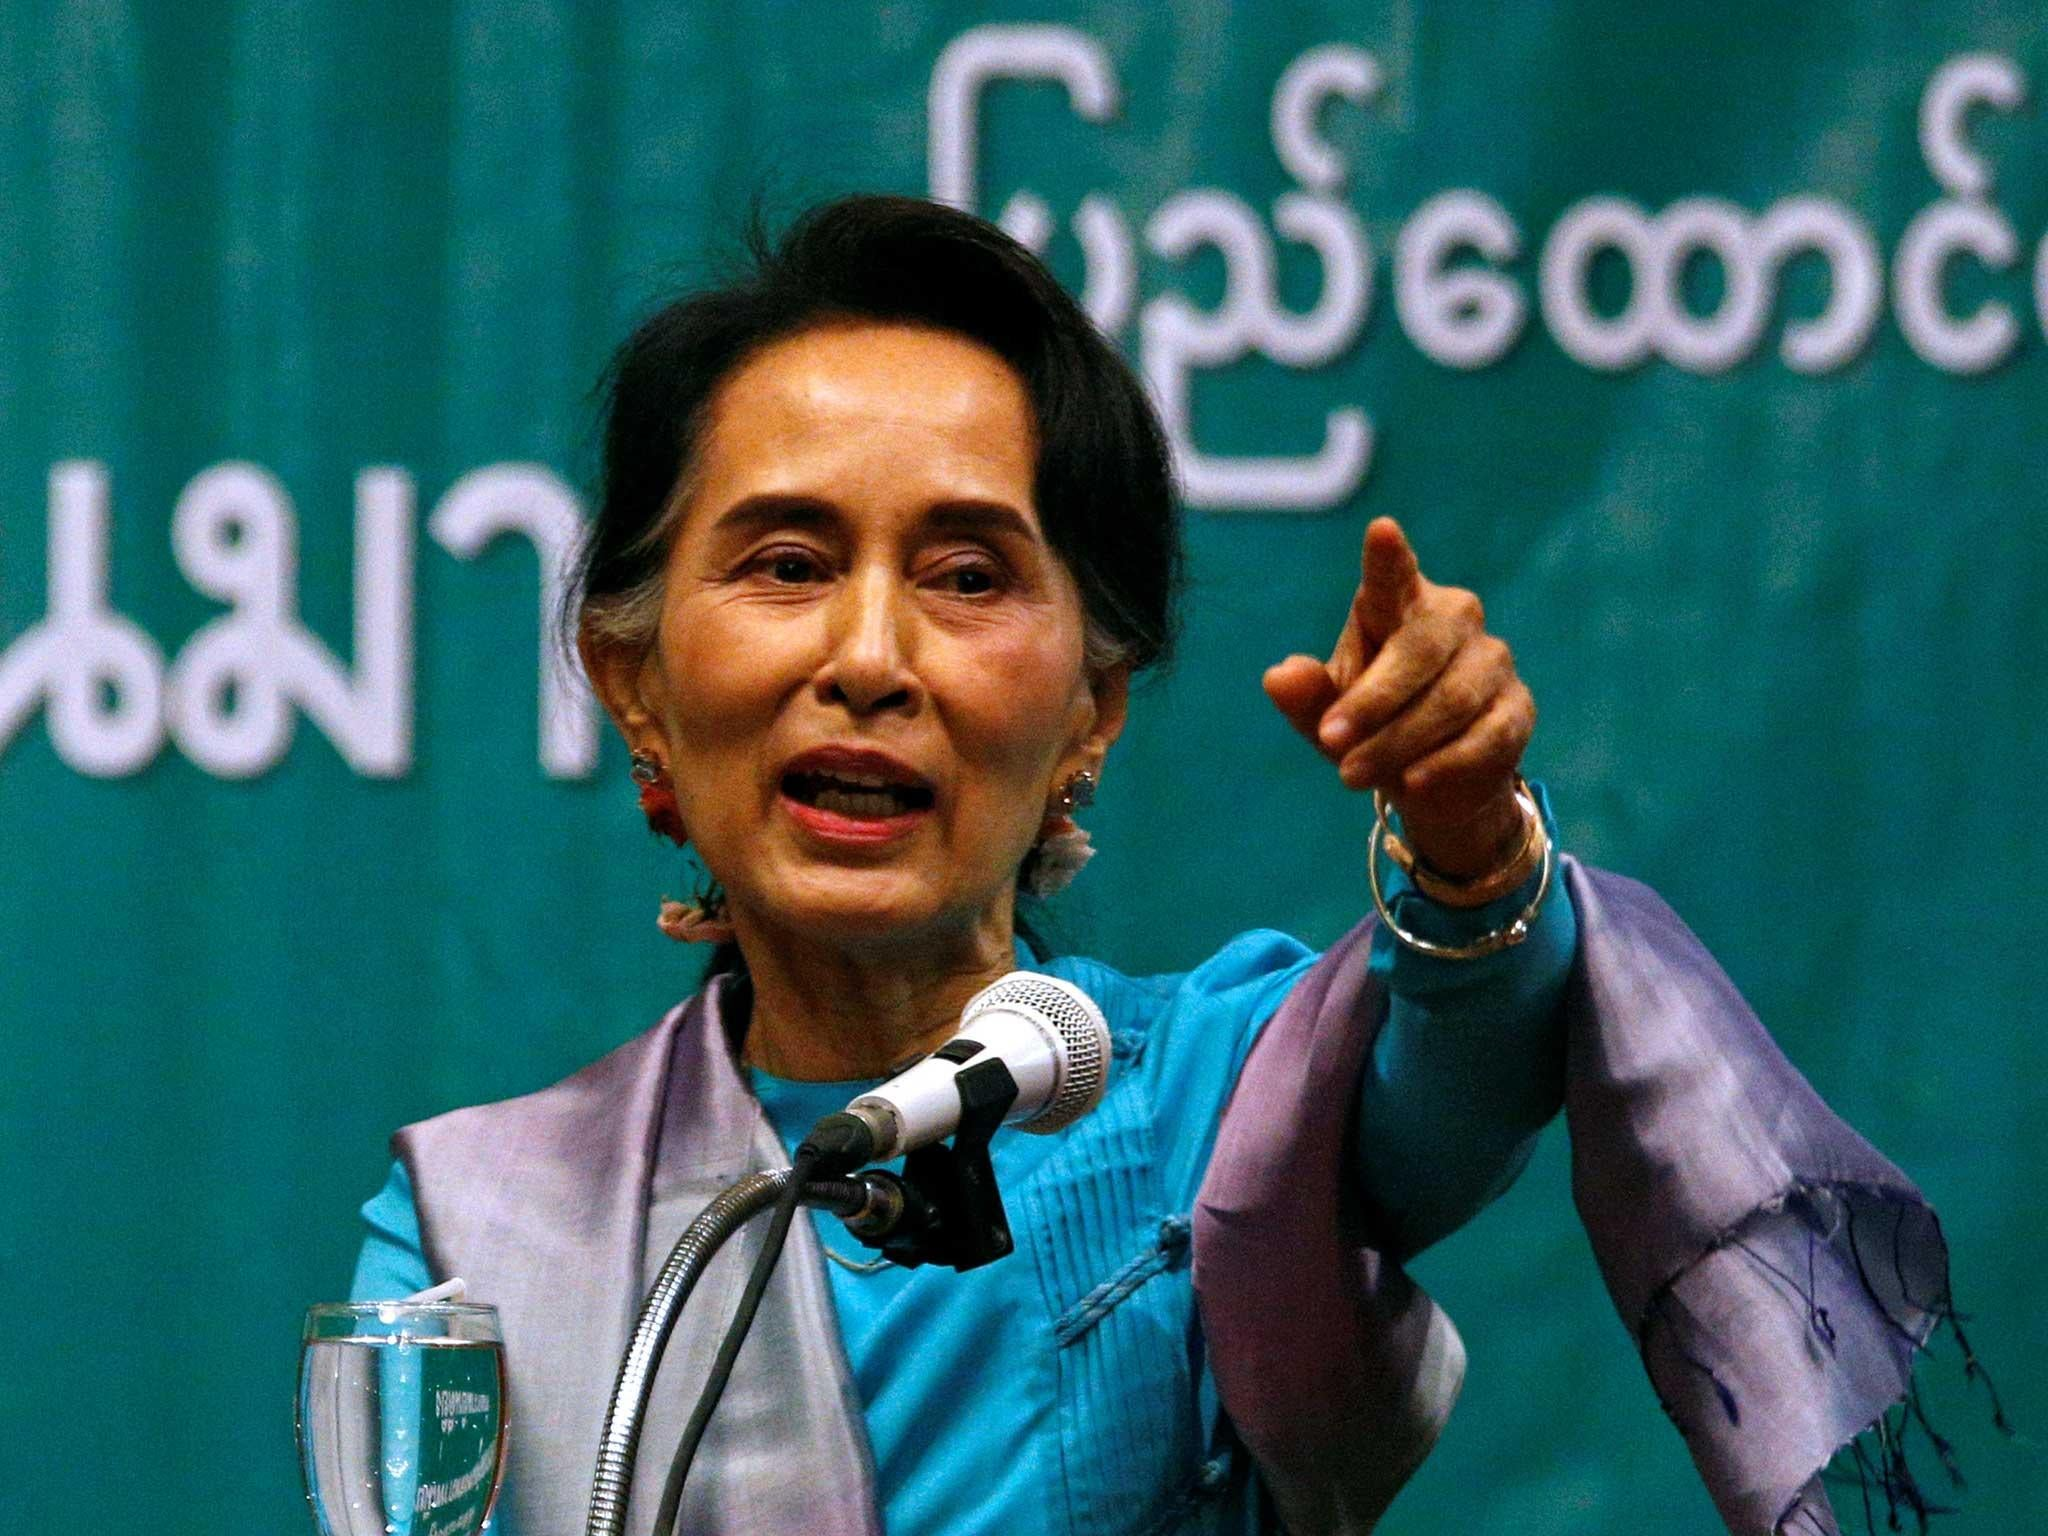 rohingya violence is 39 muslims killing muslims 39 not ethnic cleansing says aung san suu kyi the. Black Bedroom Furniture Sets. Home Design Ideas